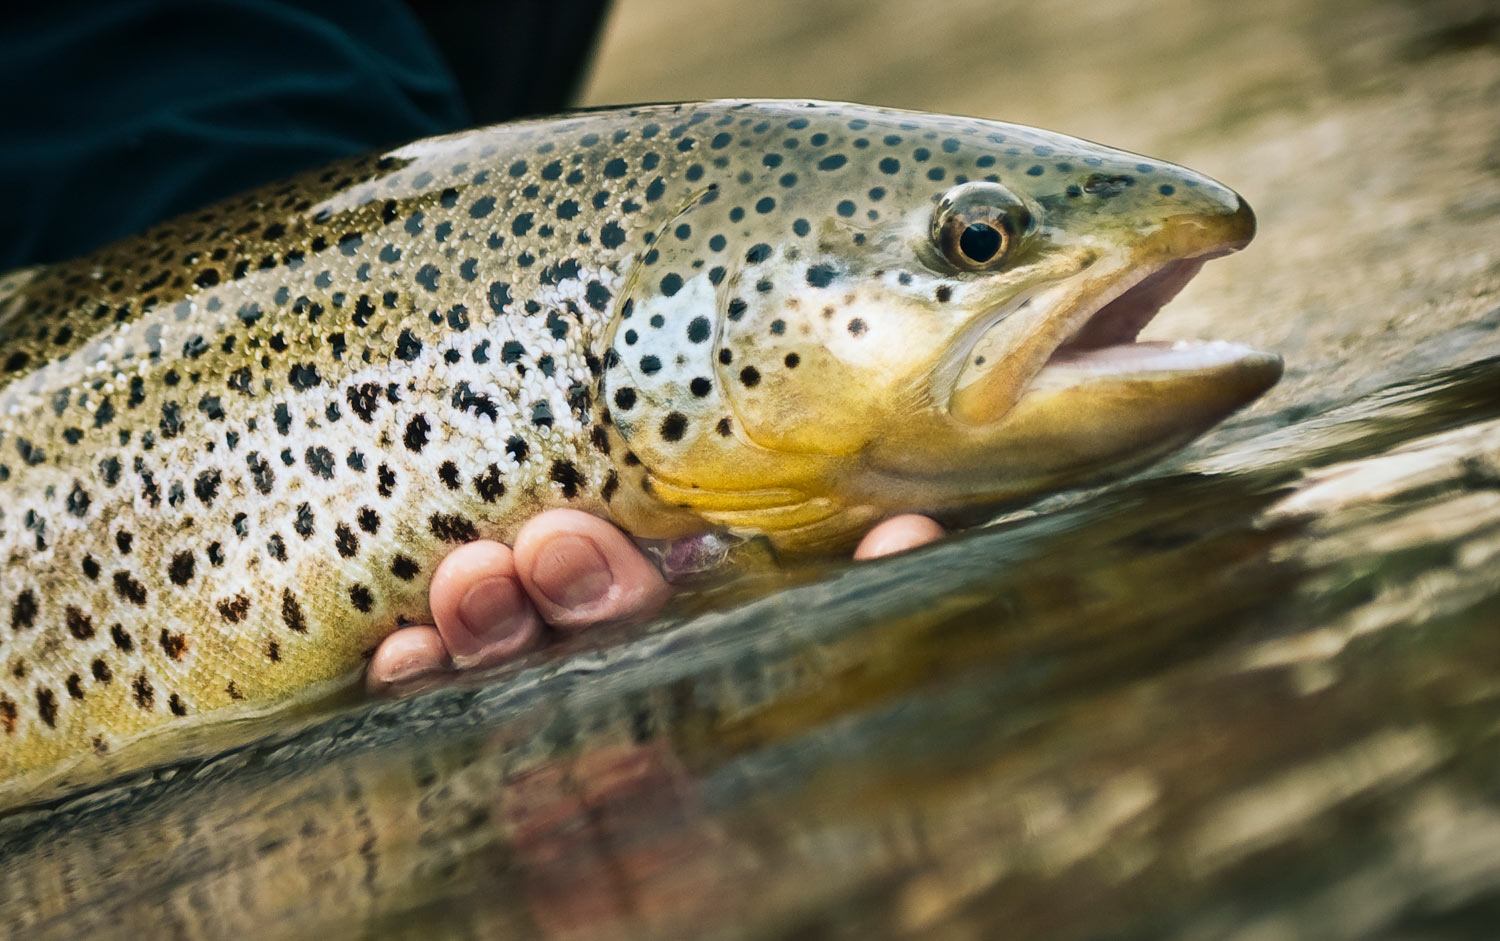 How To Hold Fish For A Photo: Video | Fly Fishing | Gink ...